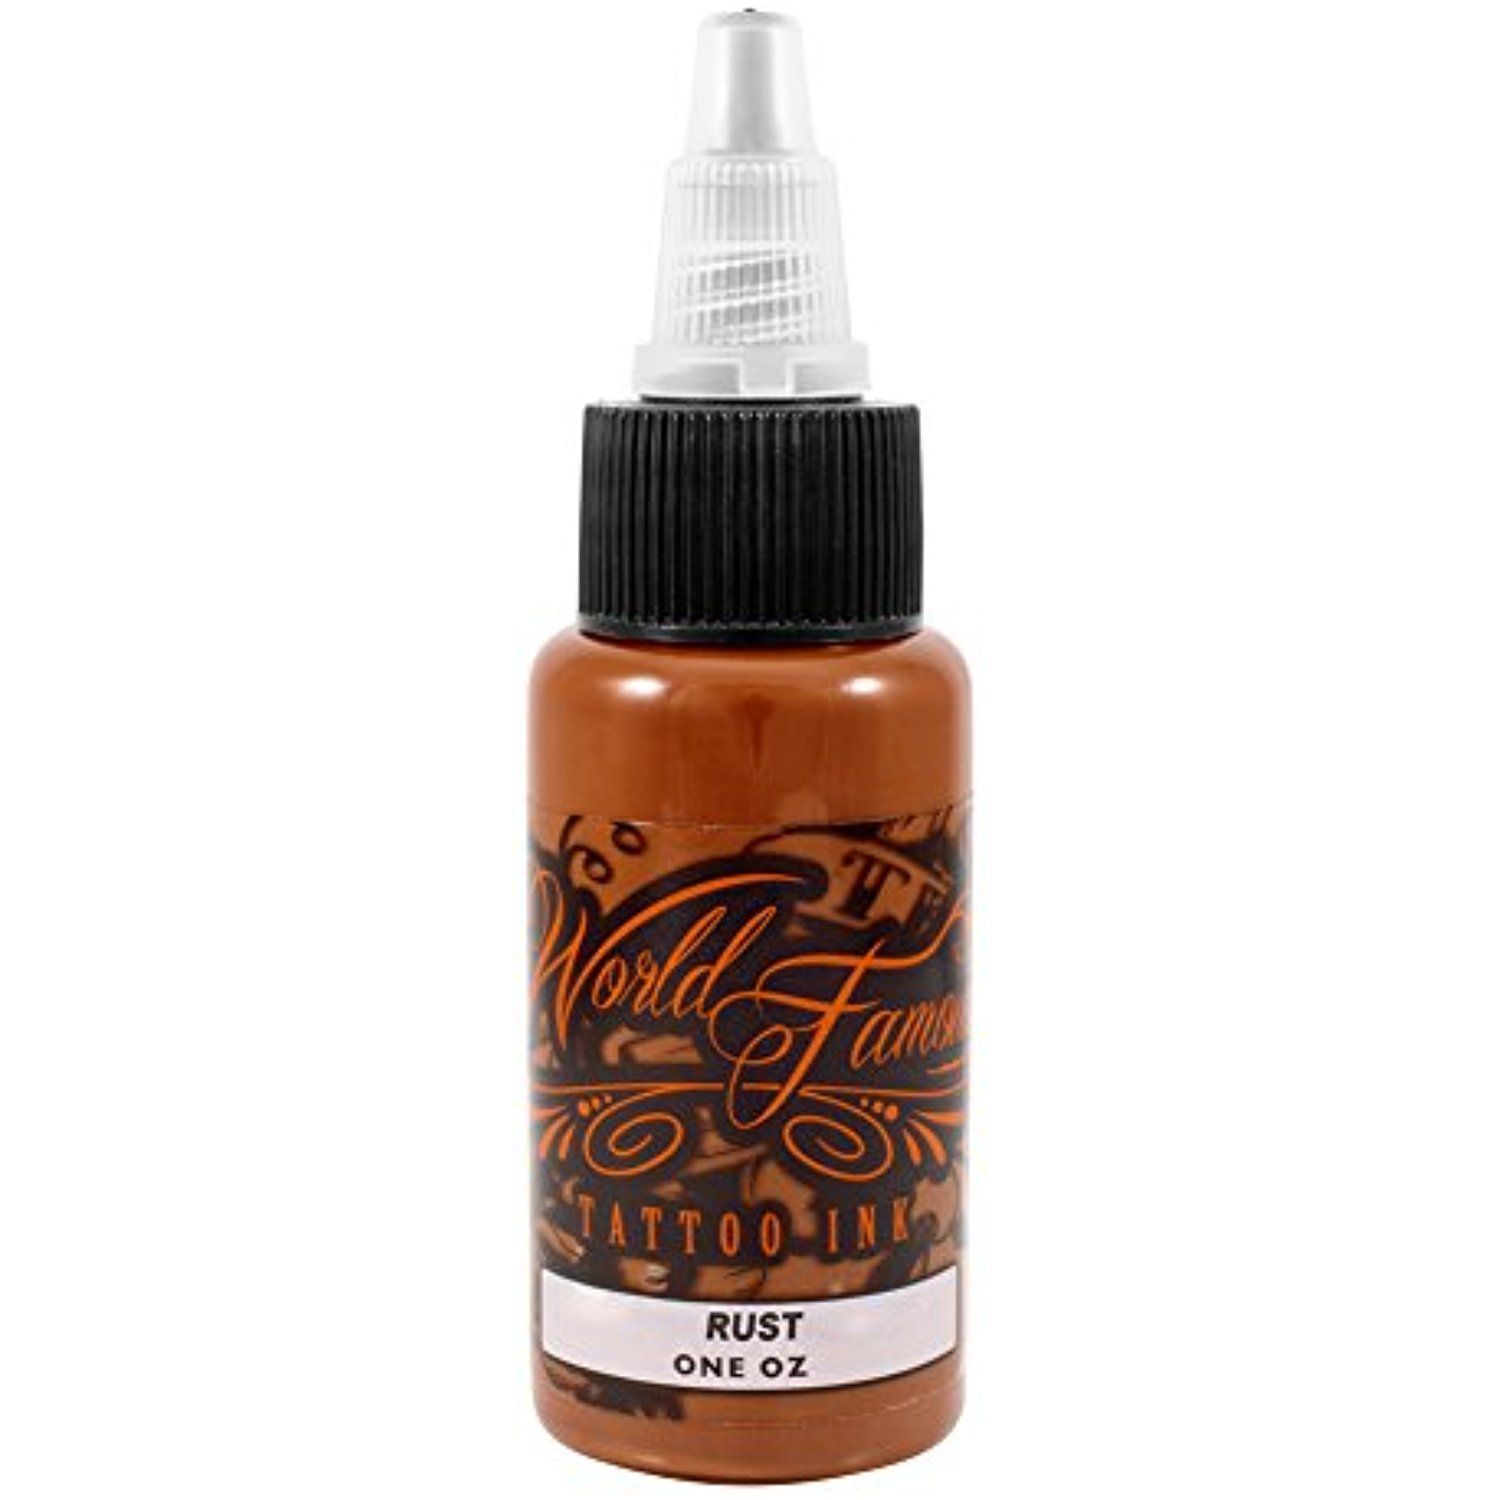 World Famous Tattoo Ink Rust in 1oz * Learn more by